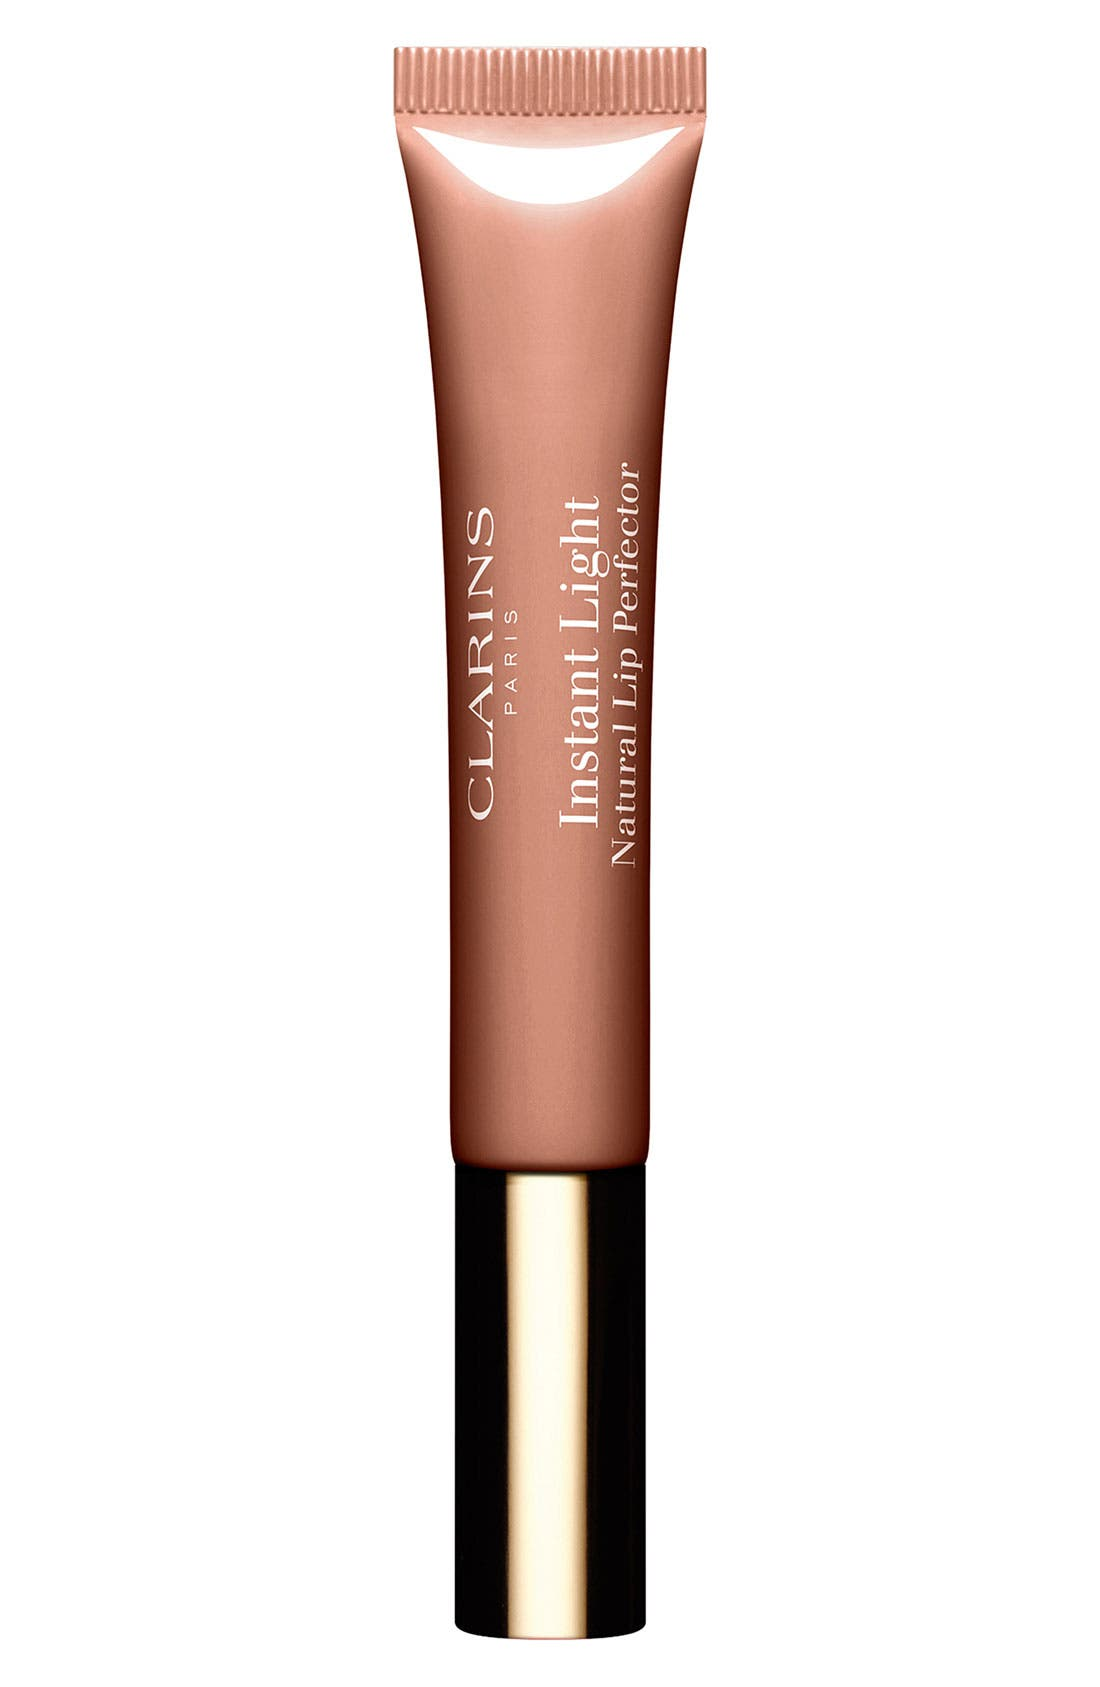 'Instant Light' Natural Lip Perfector,                             Main thumbnail 5, color,